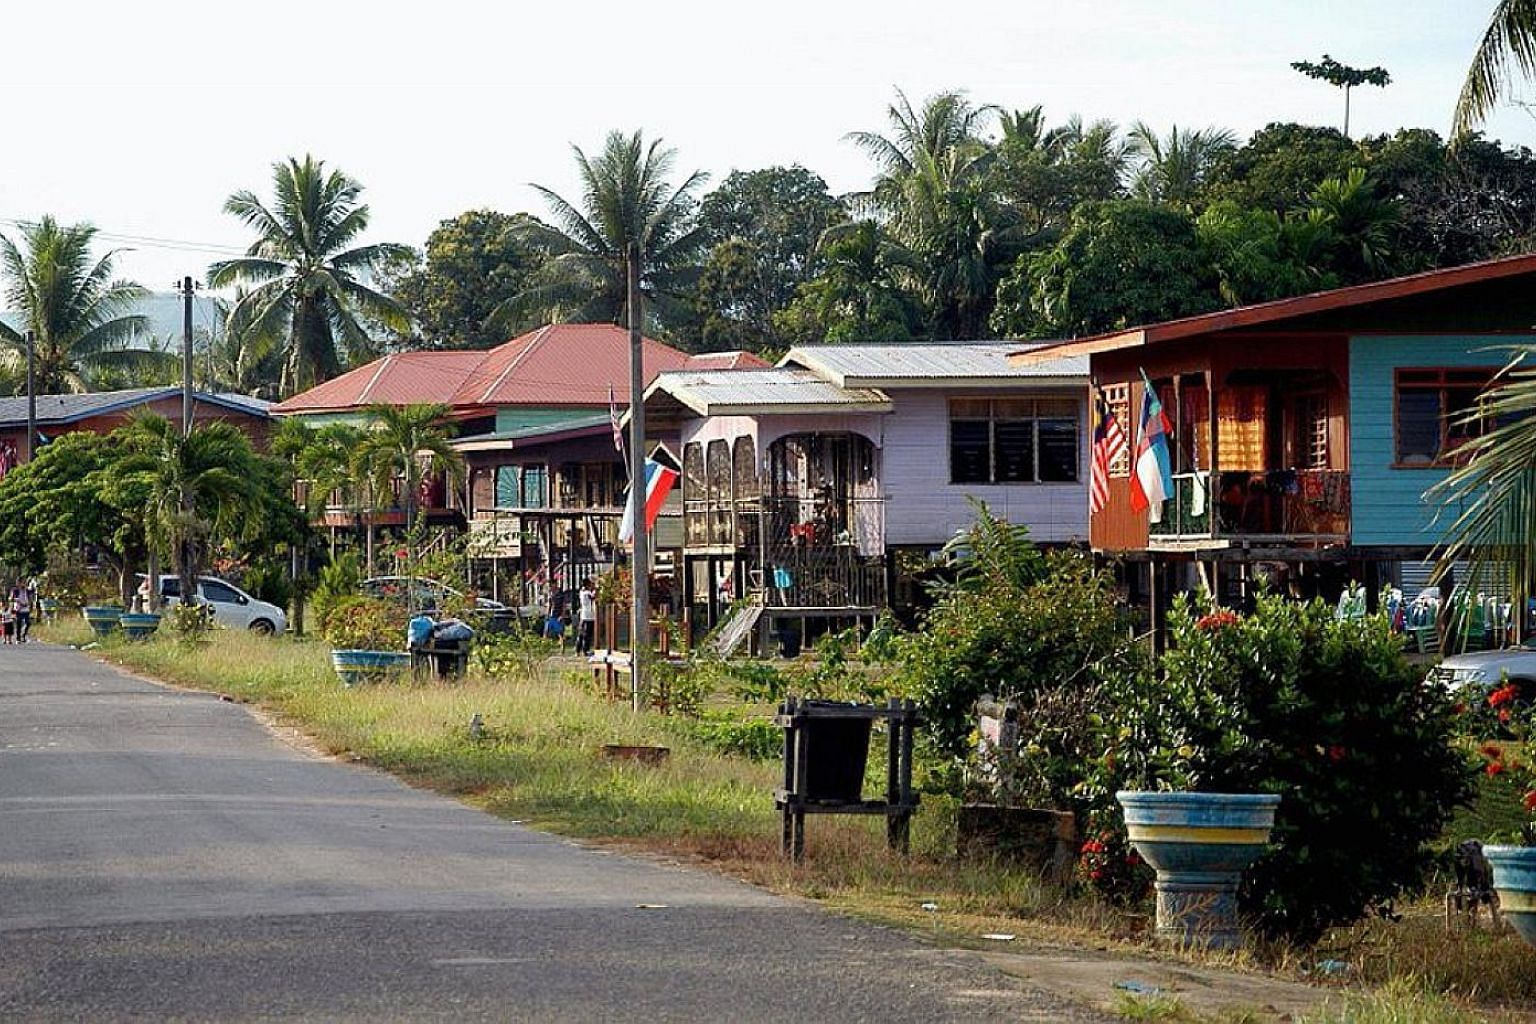 Felda is a politically sensitive agency due to the role it plays in the lives of Malaysia's largely rural dominant Malay community. PHOTO: NEW STRAITS TIMES